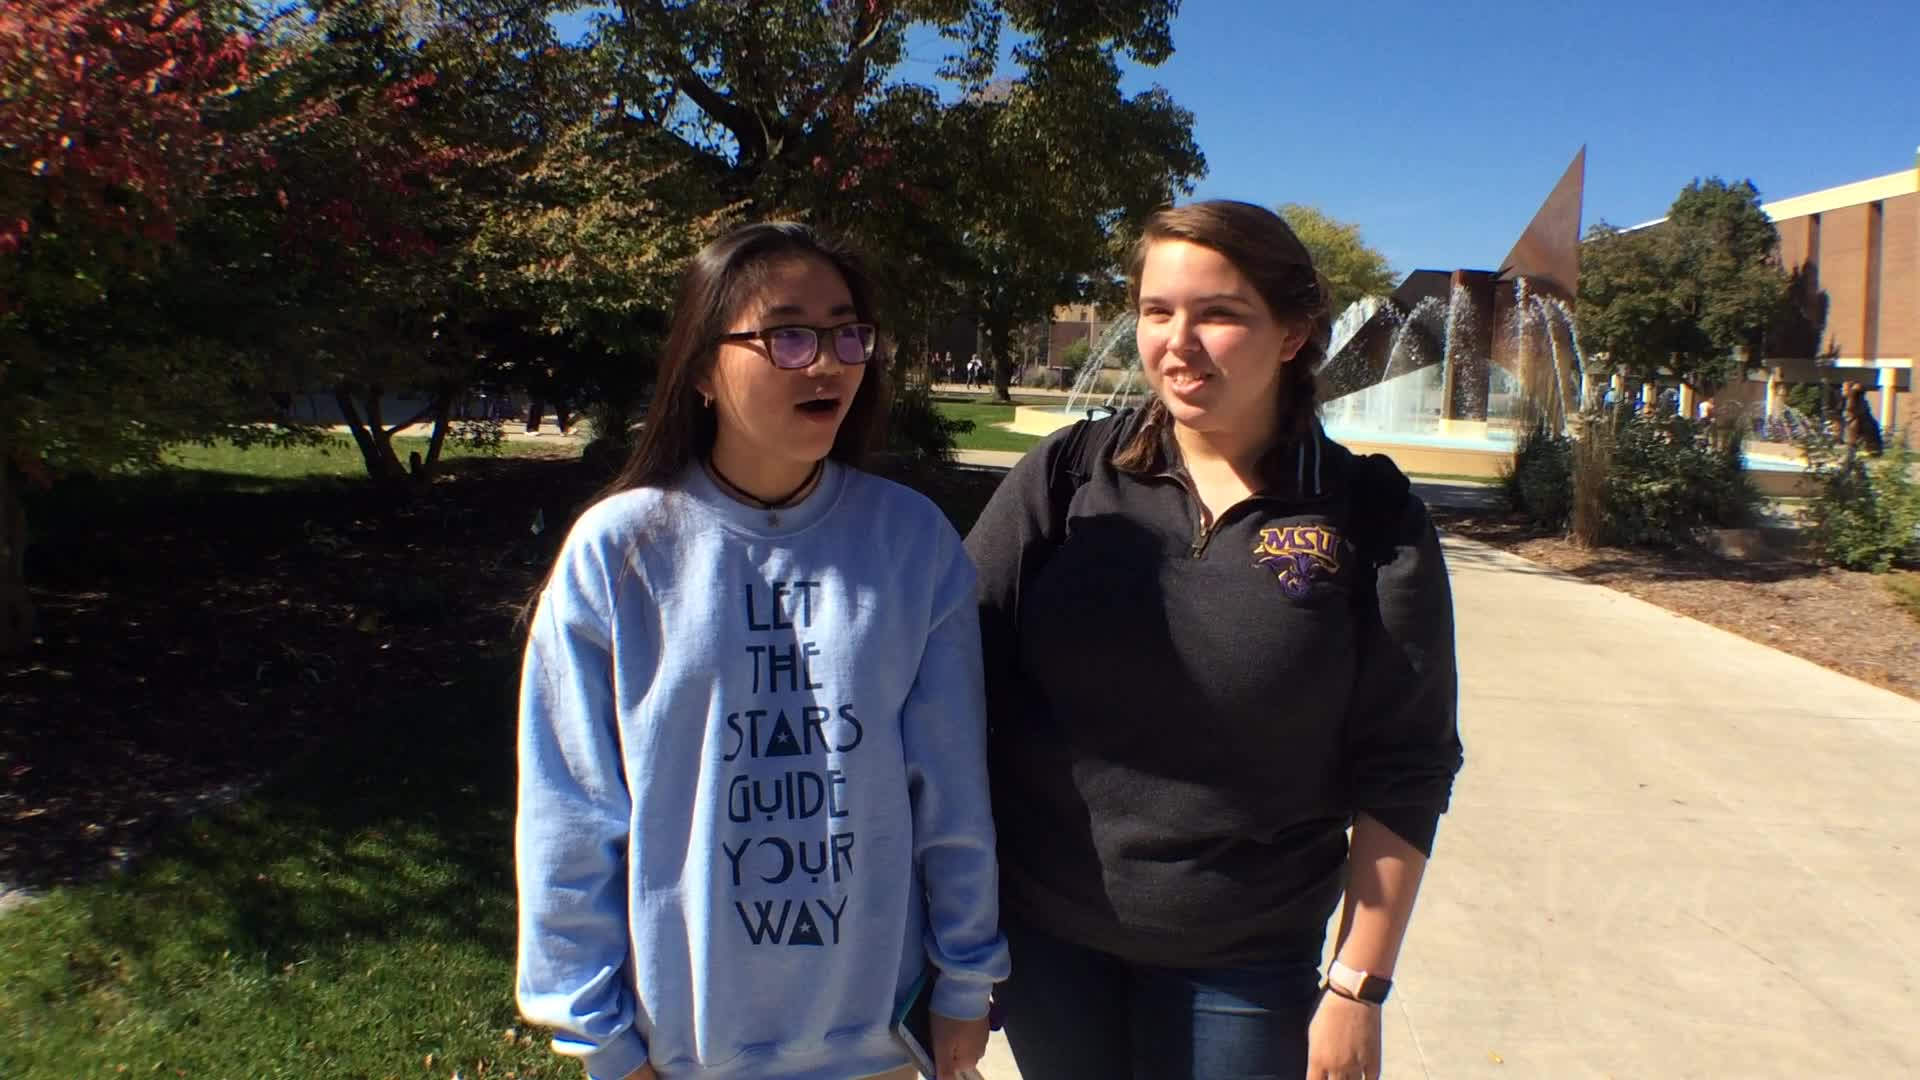 Linh Hoang and Eryn Zuiker, Mankato, MN - Homecoming 2016 at Minnesota State University, Mankato